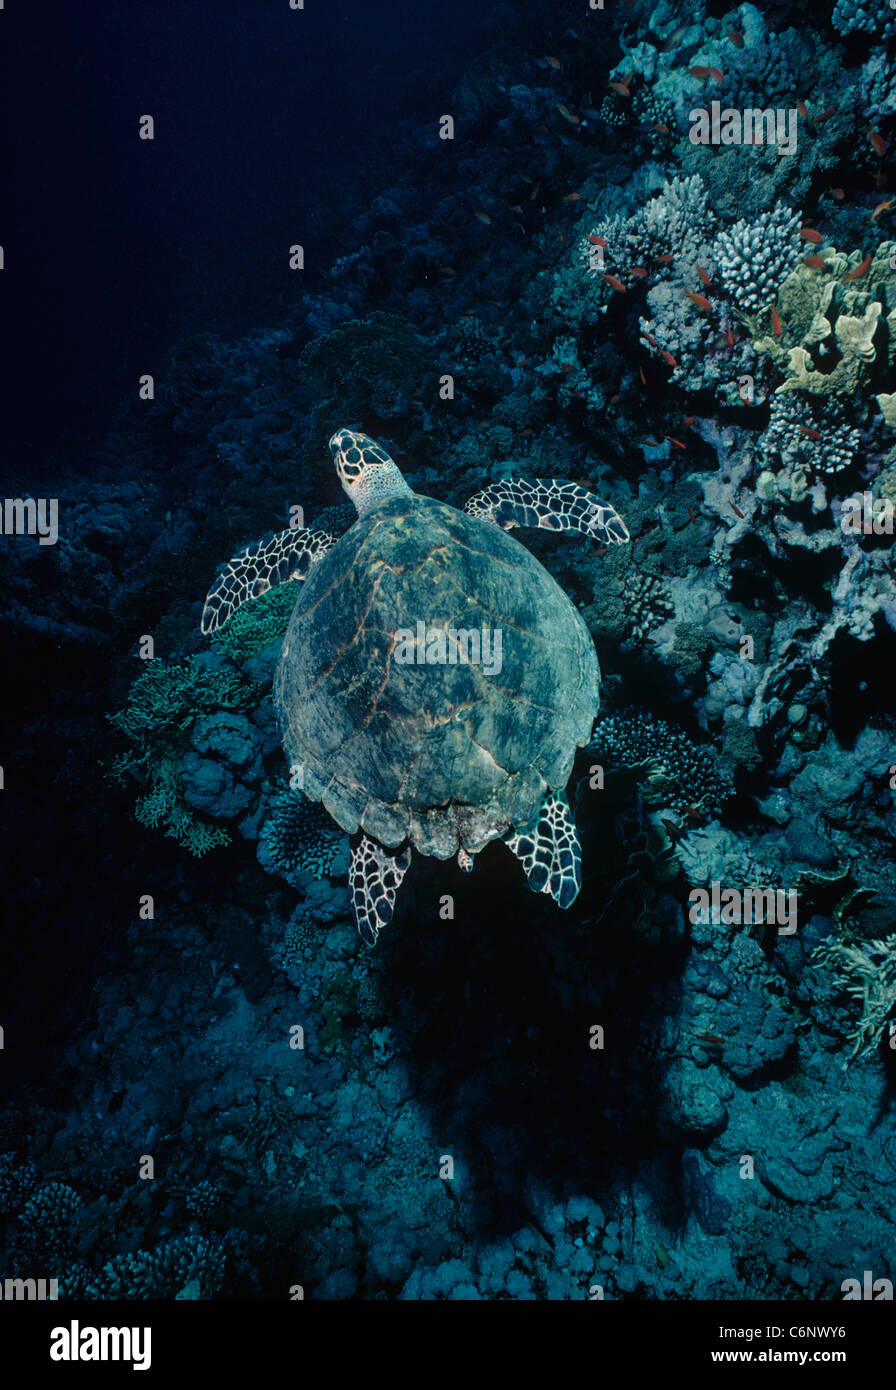 Hawksbill Turtle (Eretmochelys imbricata) swimming over a coral reef. Egypt, Red Sea - Stock Image